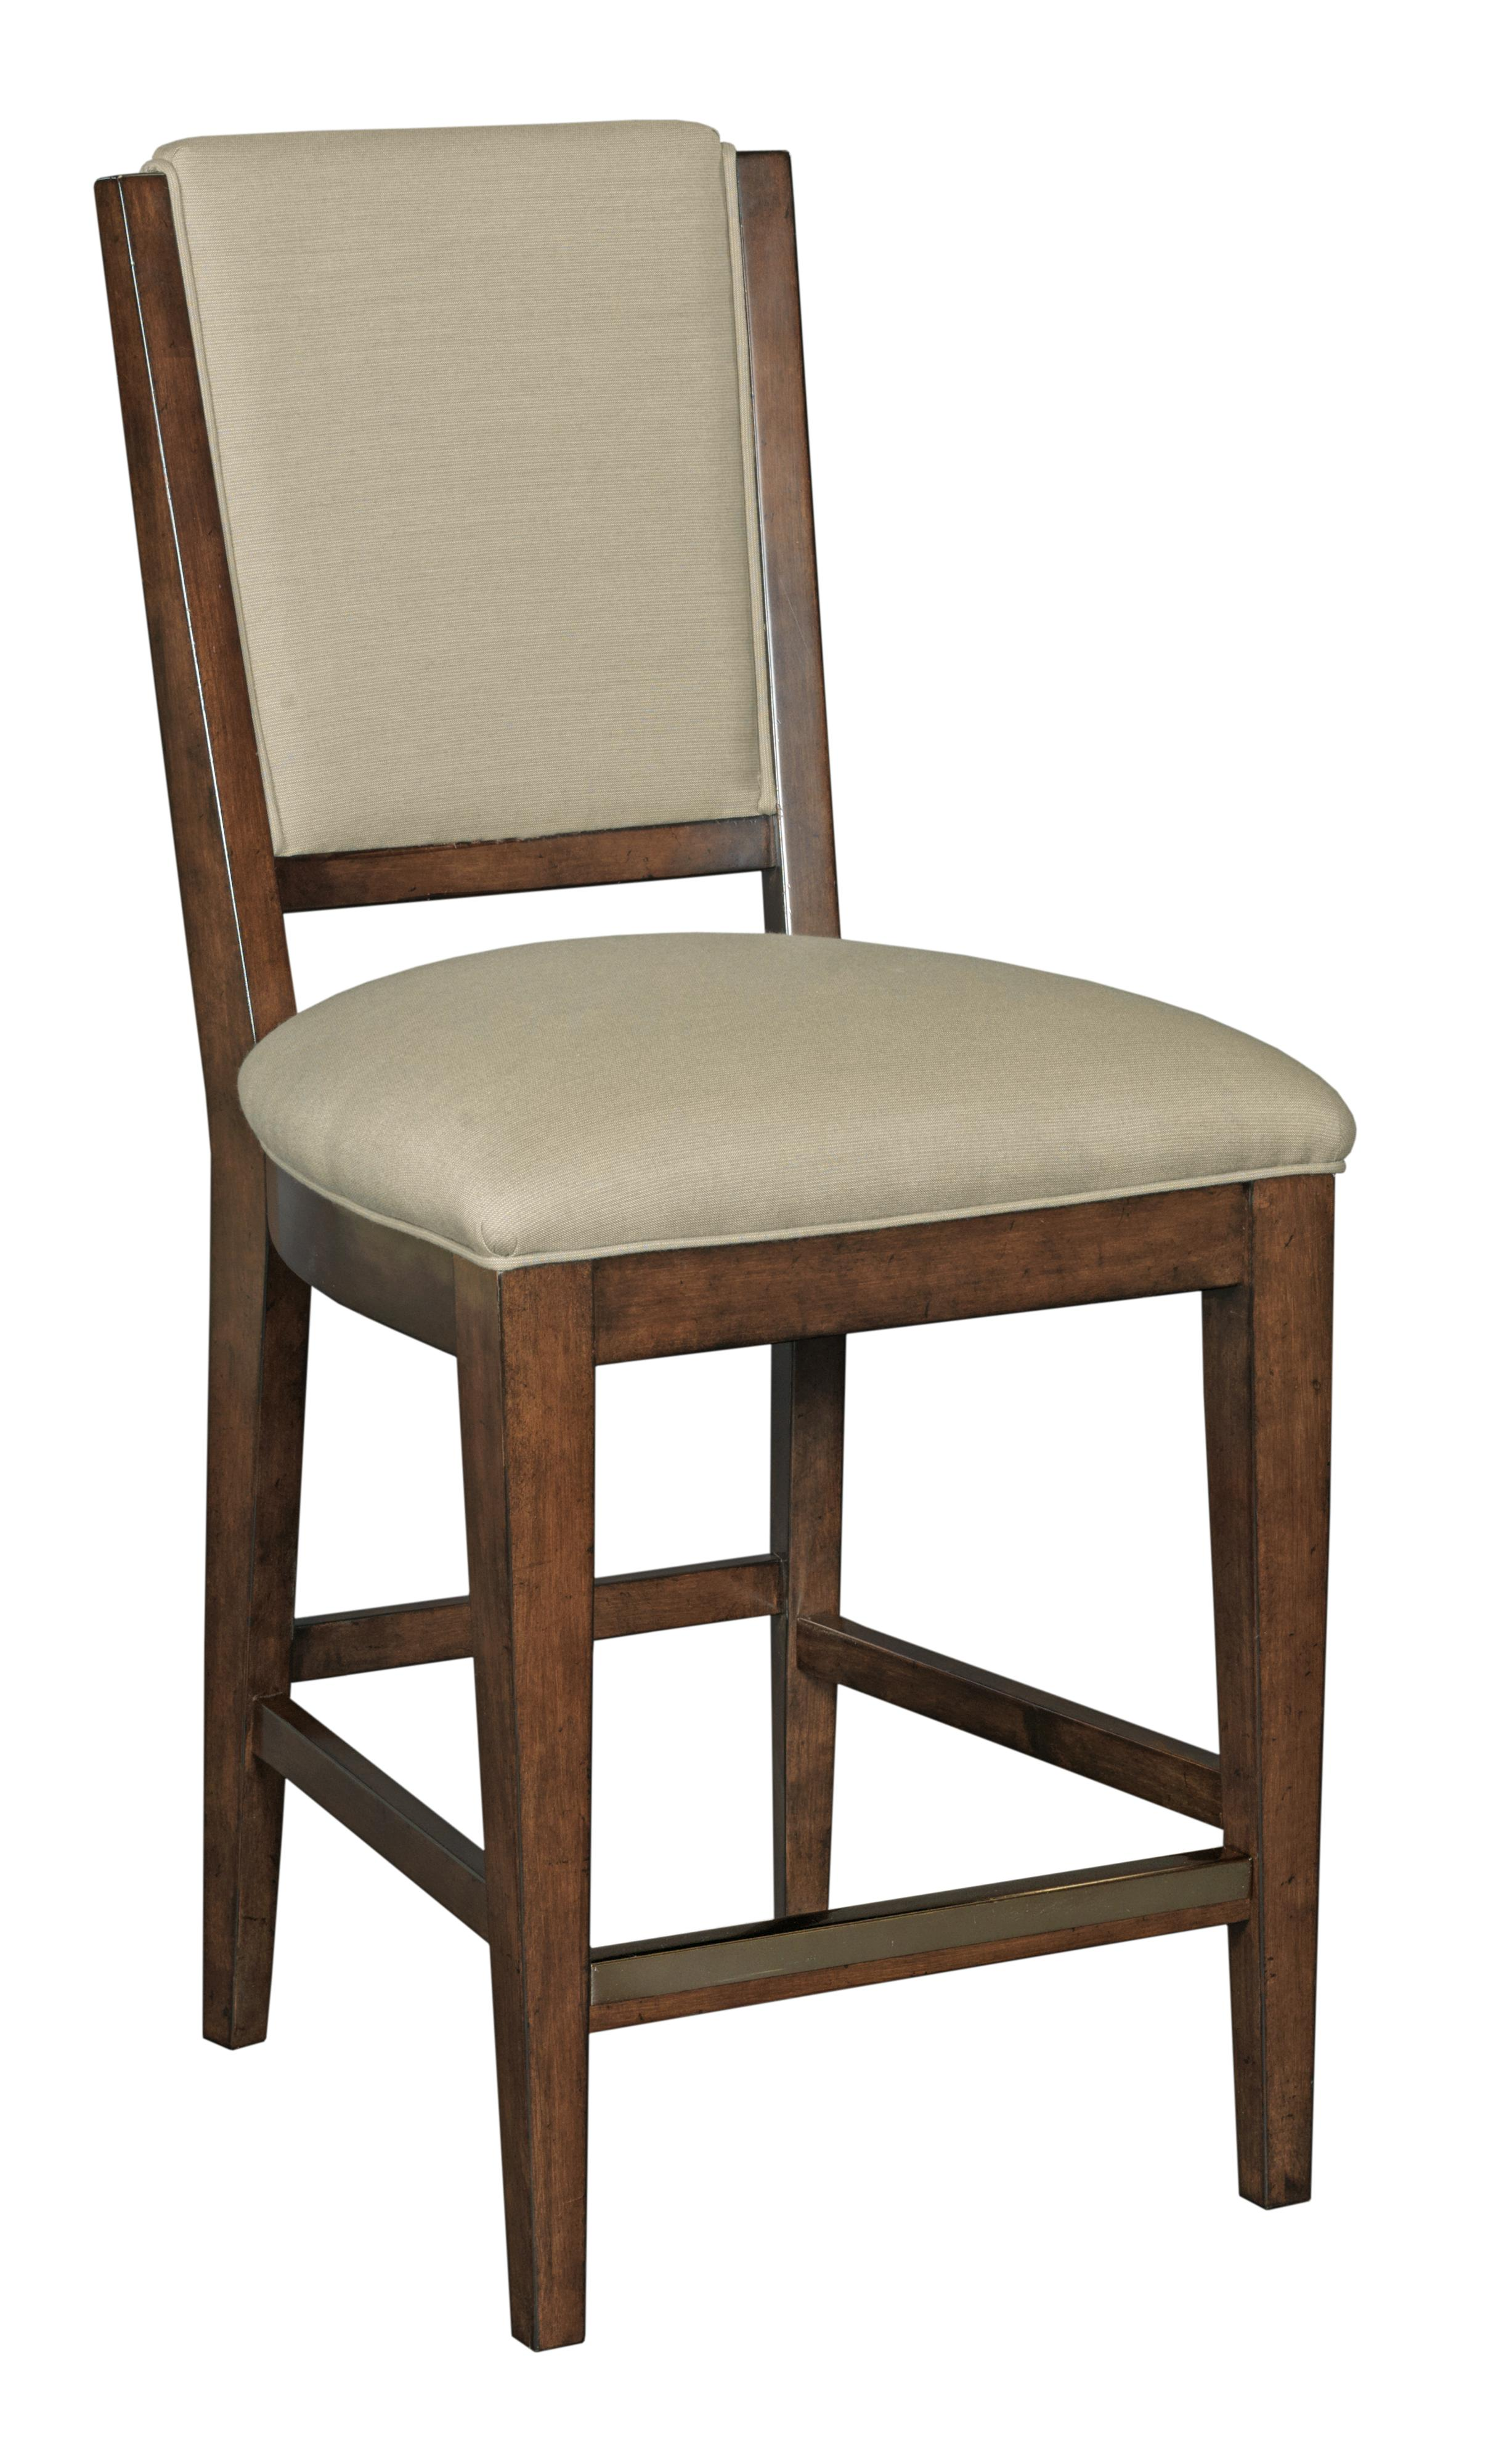 Kincaid Furniture Elise Transitional Spectrum Counter Height Chair With Perfo